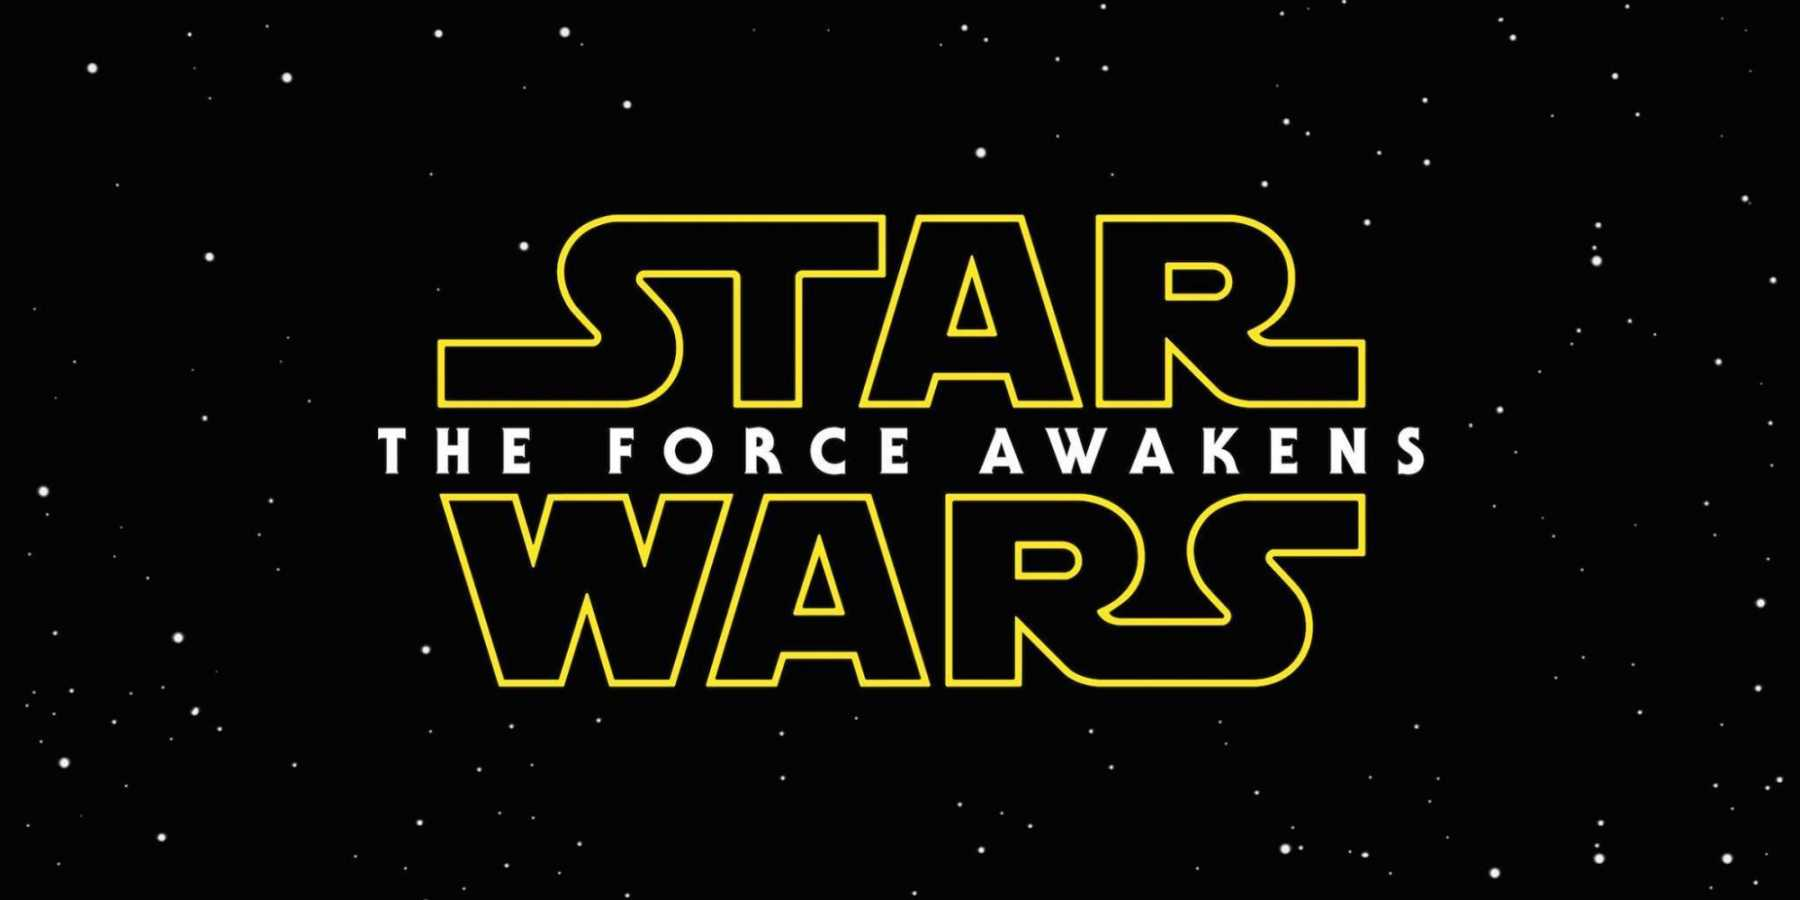 Star Wars: The Force Awakens Trailer Premieres This Friday | Star Wars